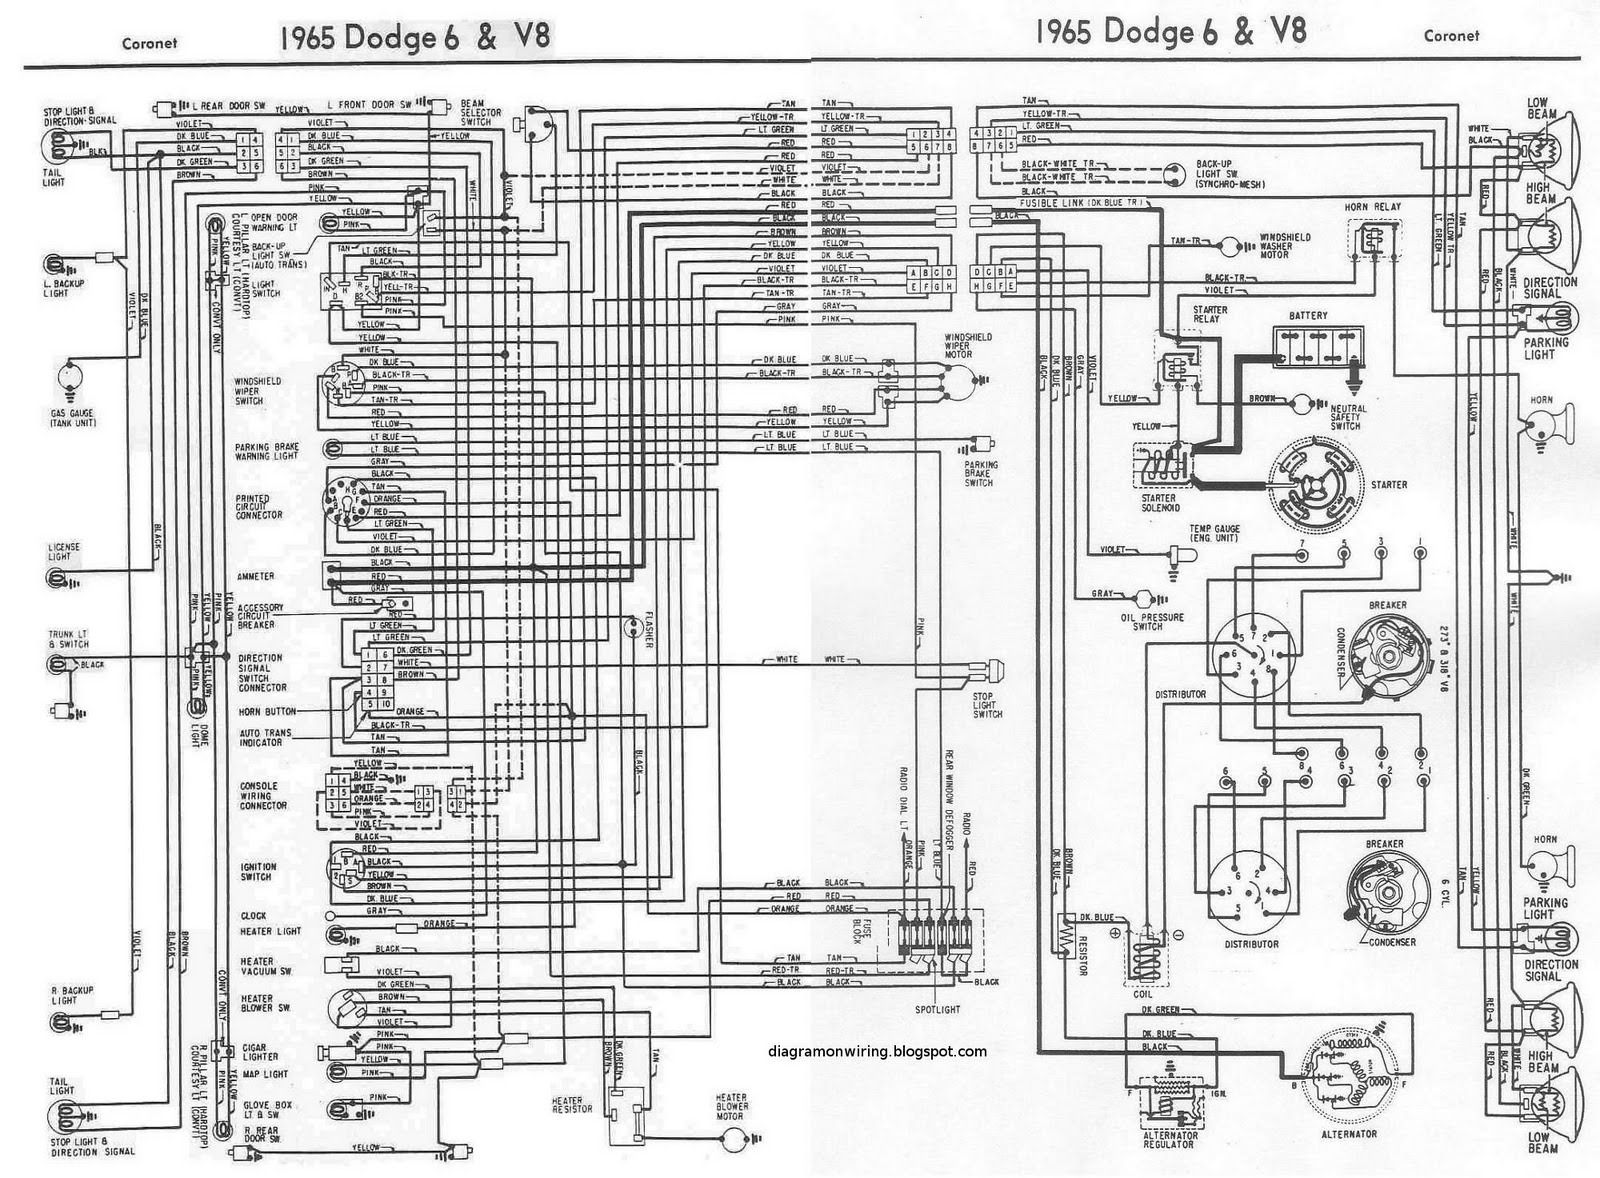 Amazing 67 Chevy C10 Wiring Diagram Vignette - Electrical Diagram ...